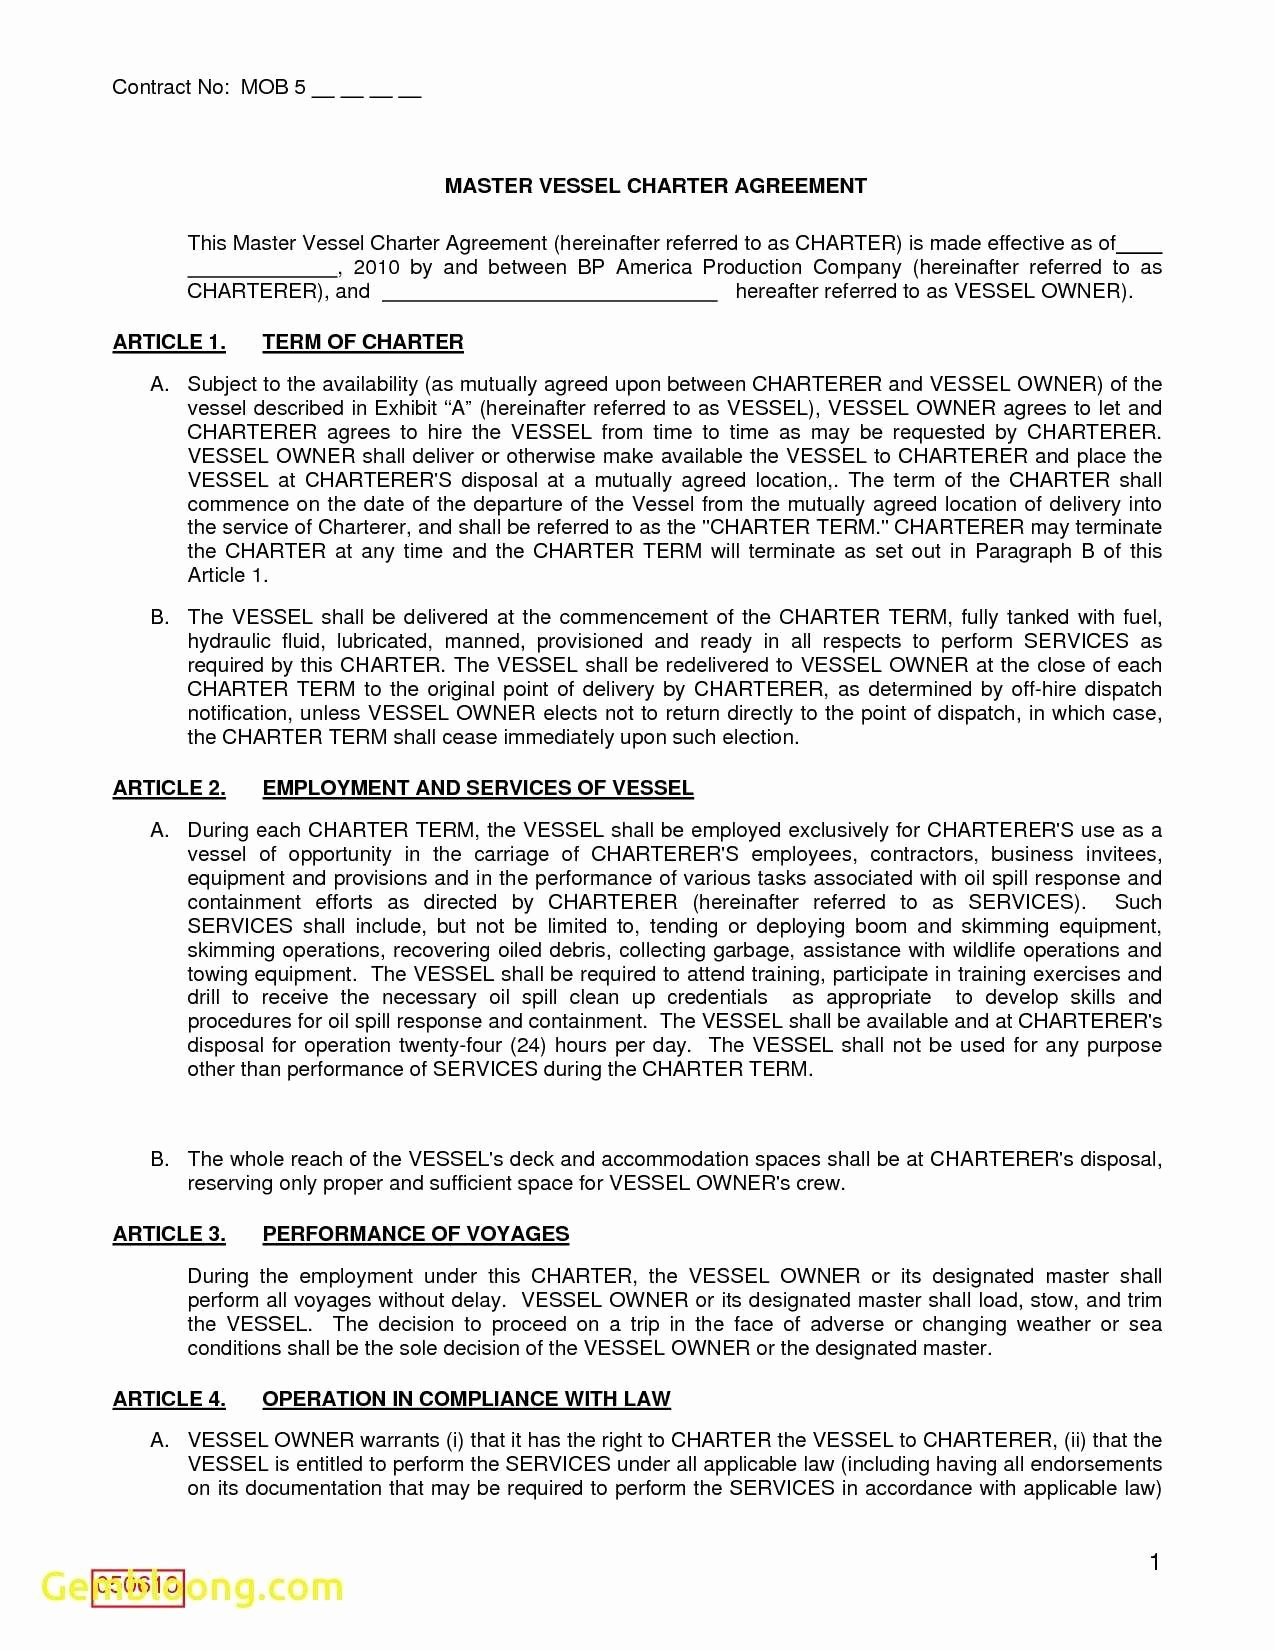 Master Service Agreement Template Inspirational Master Service Agreement Template Consulting original